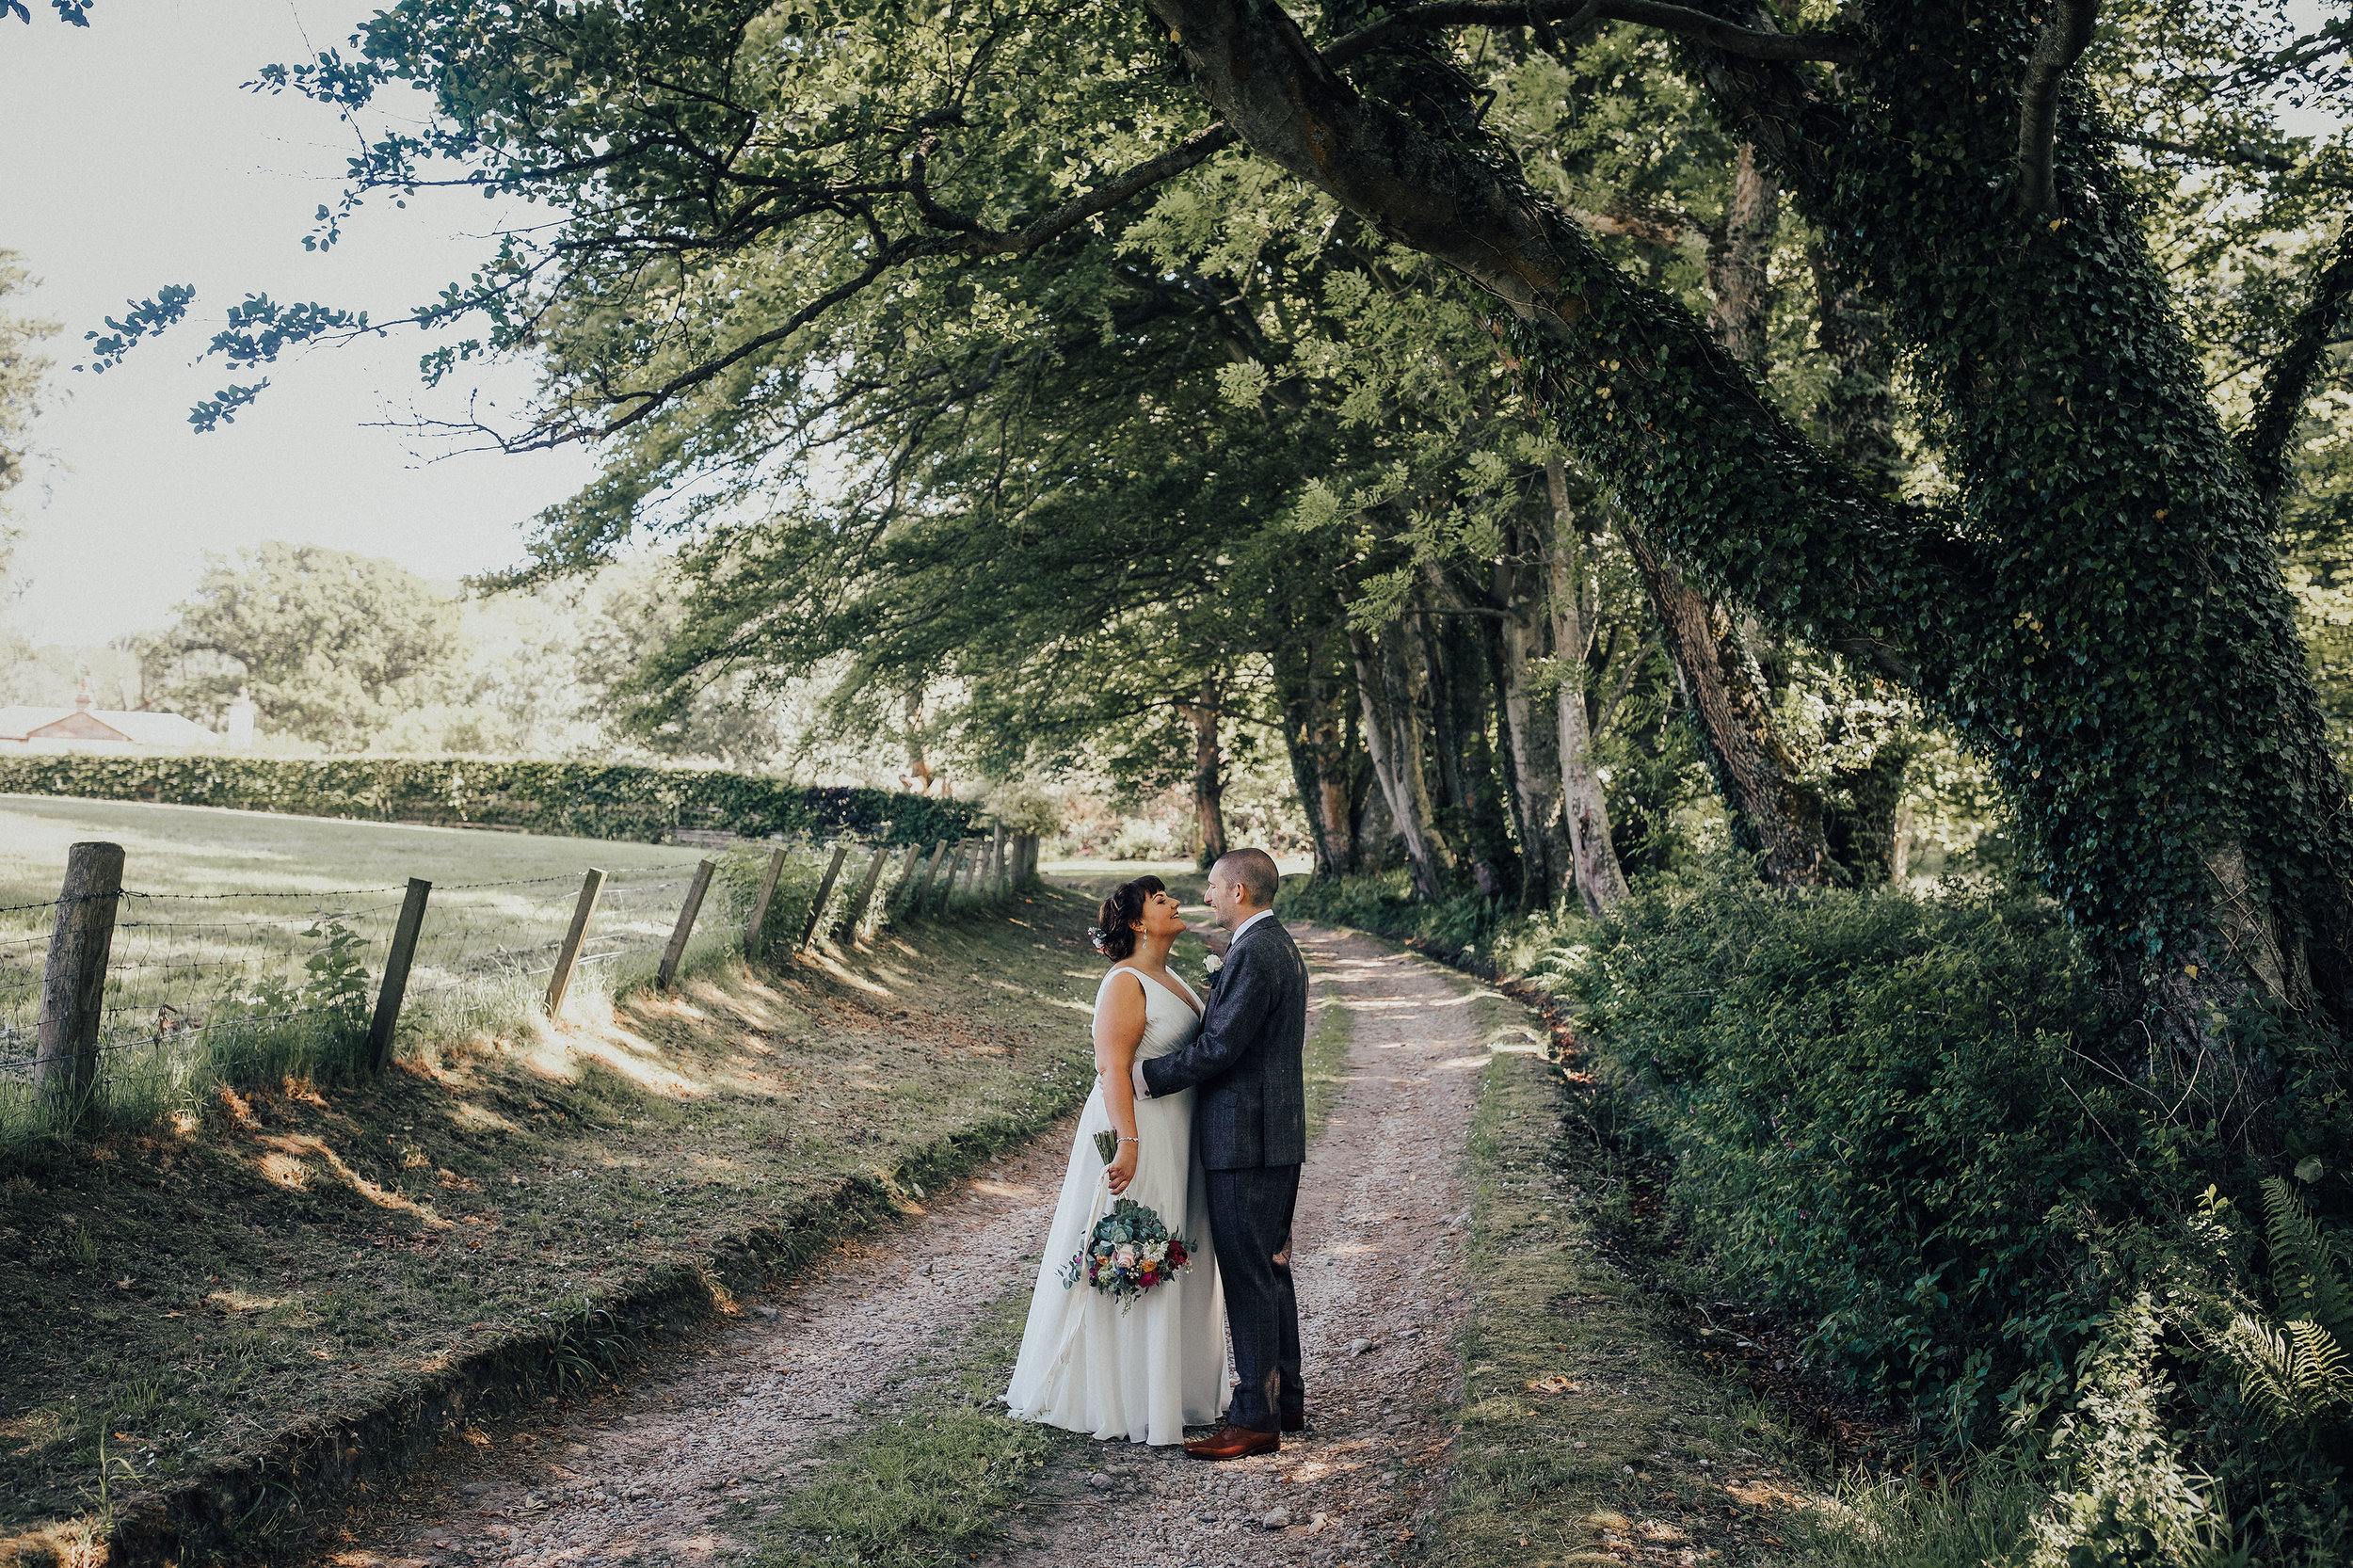 SCOTTISH_ELOPEMENT_PHOTOGRAPHER_PJ_PHILLIPS_PHOTOGRAPHY_165.jpg